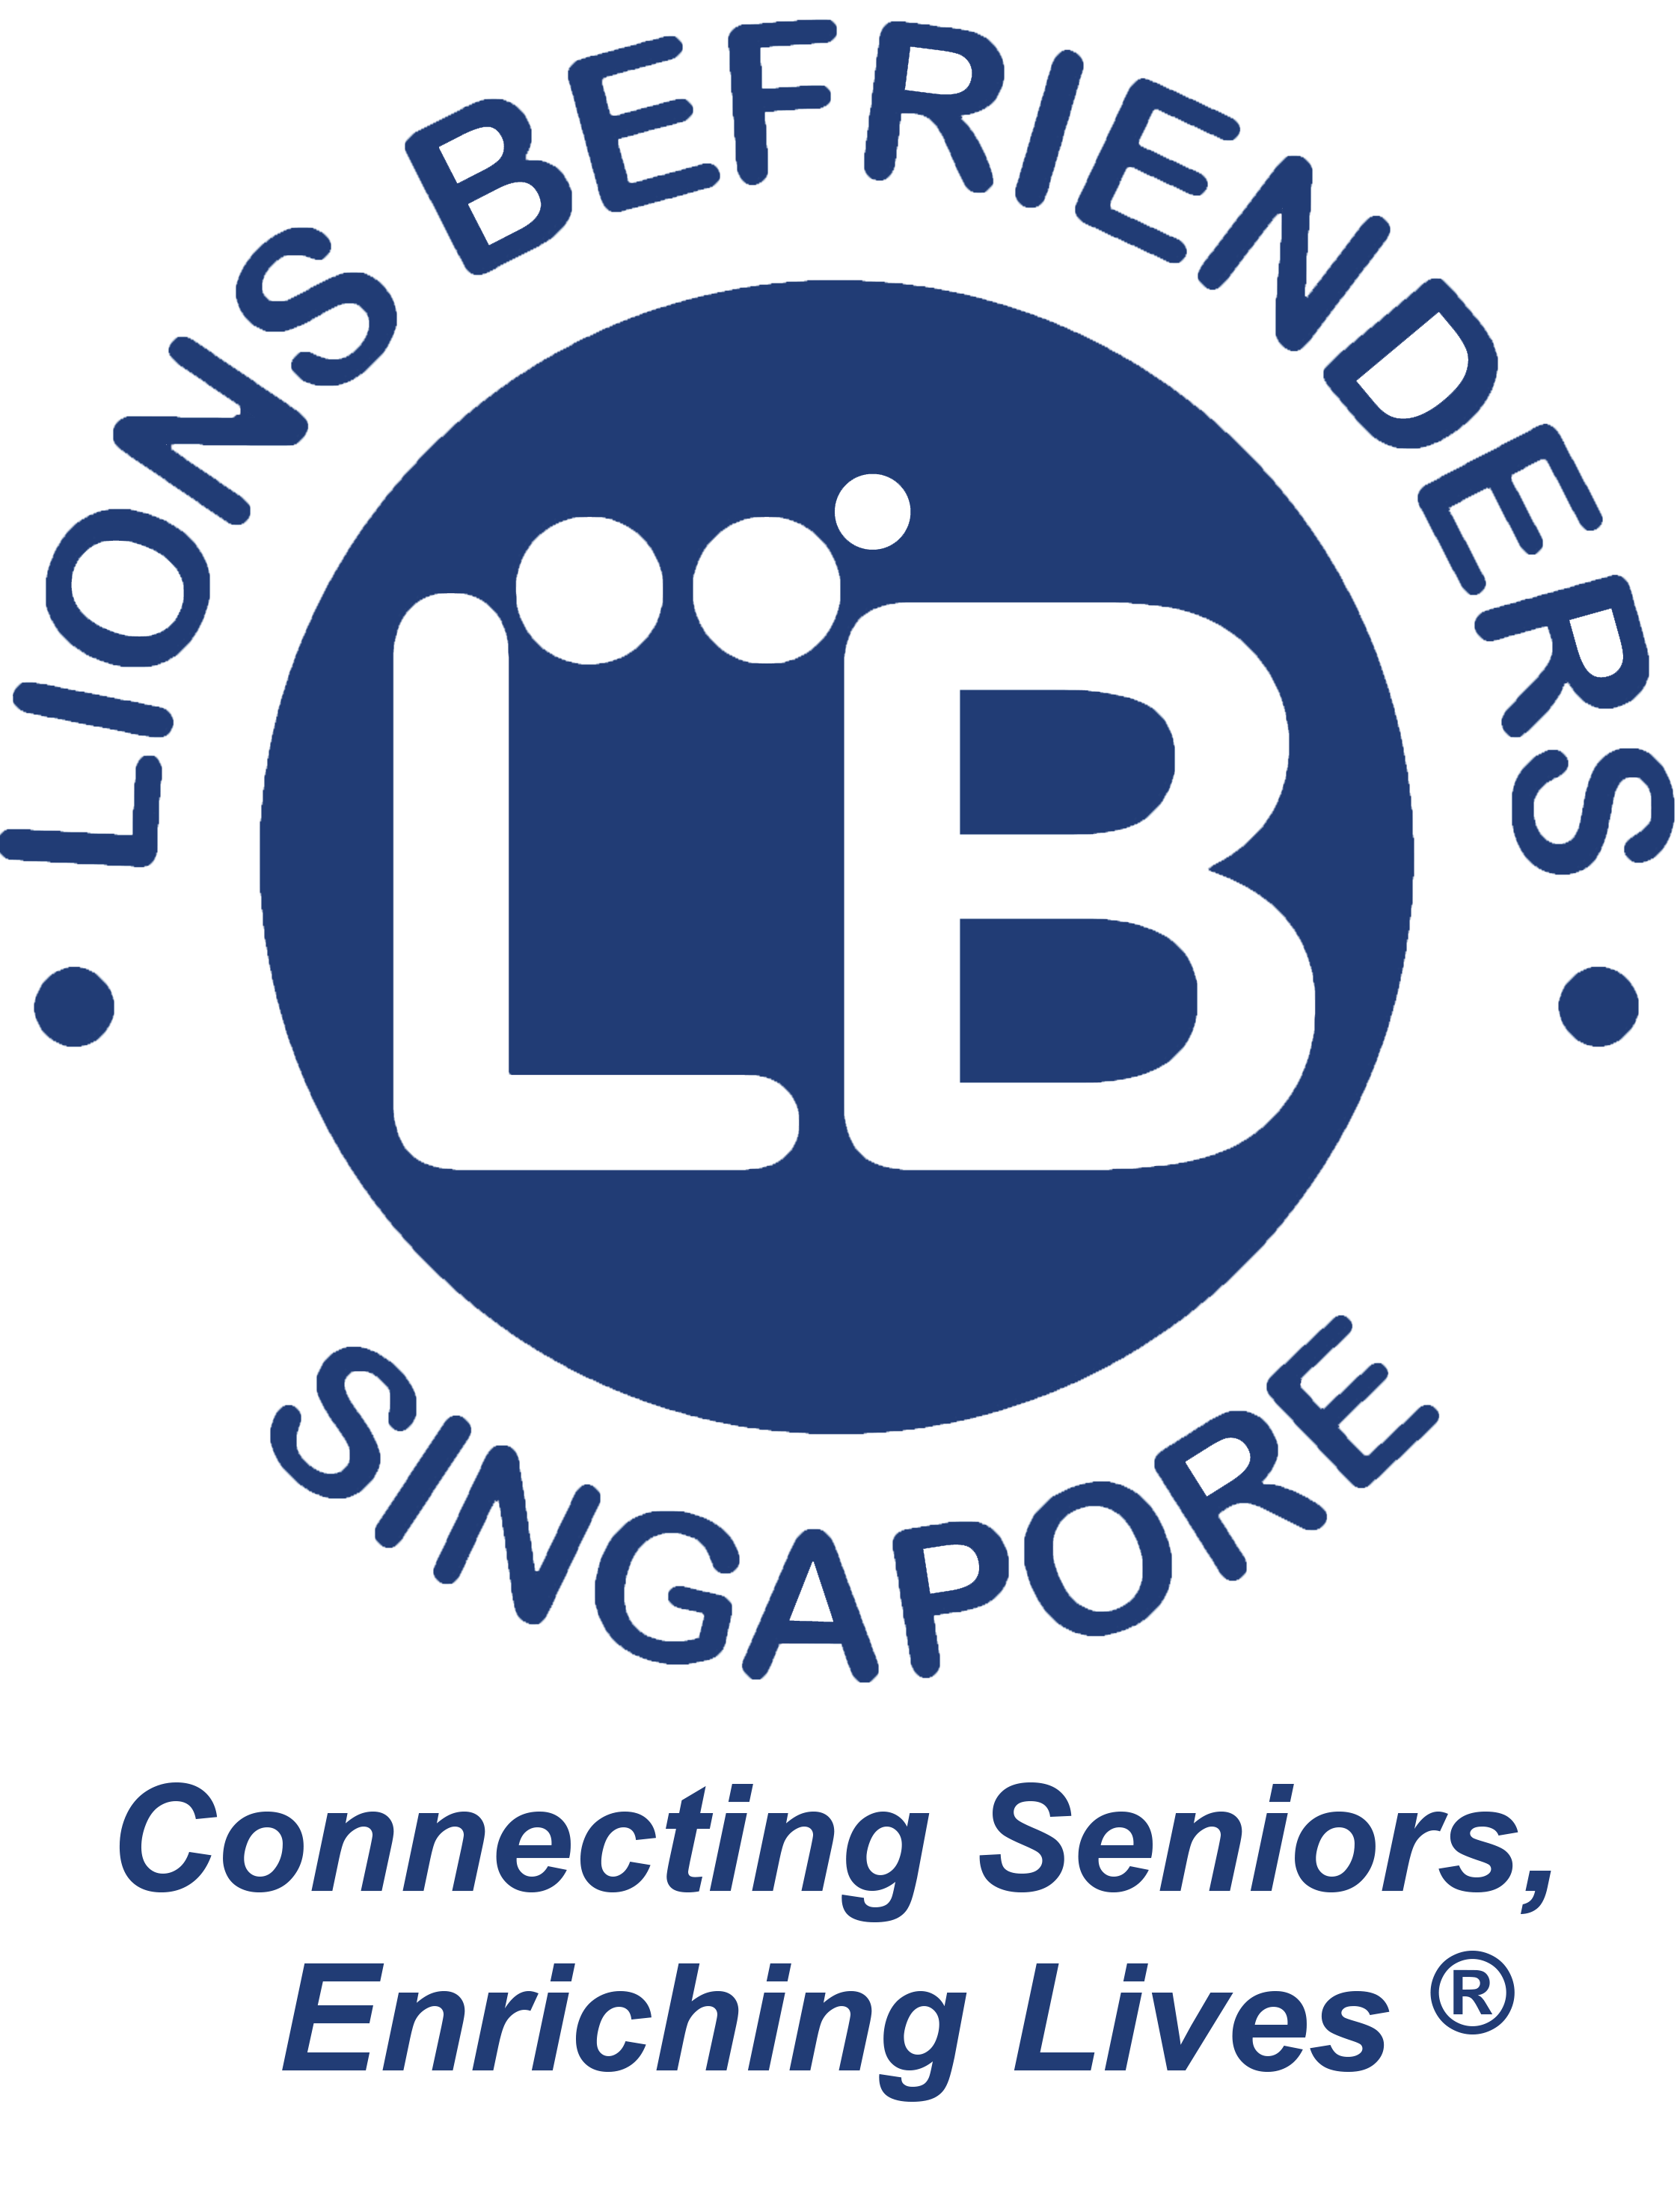 Lions Befrienders Service Association